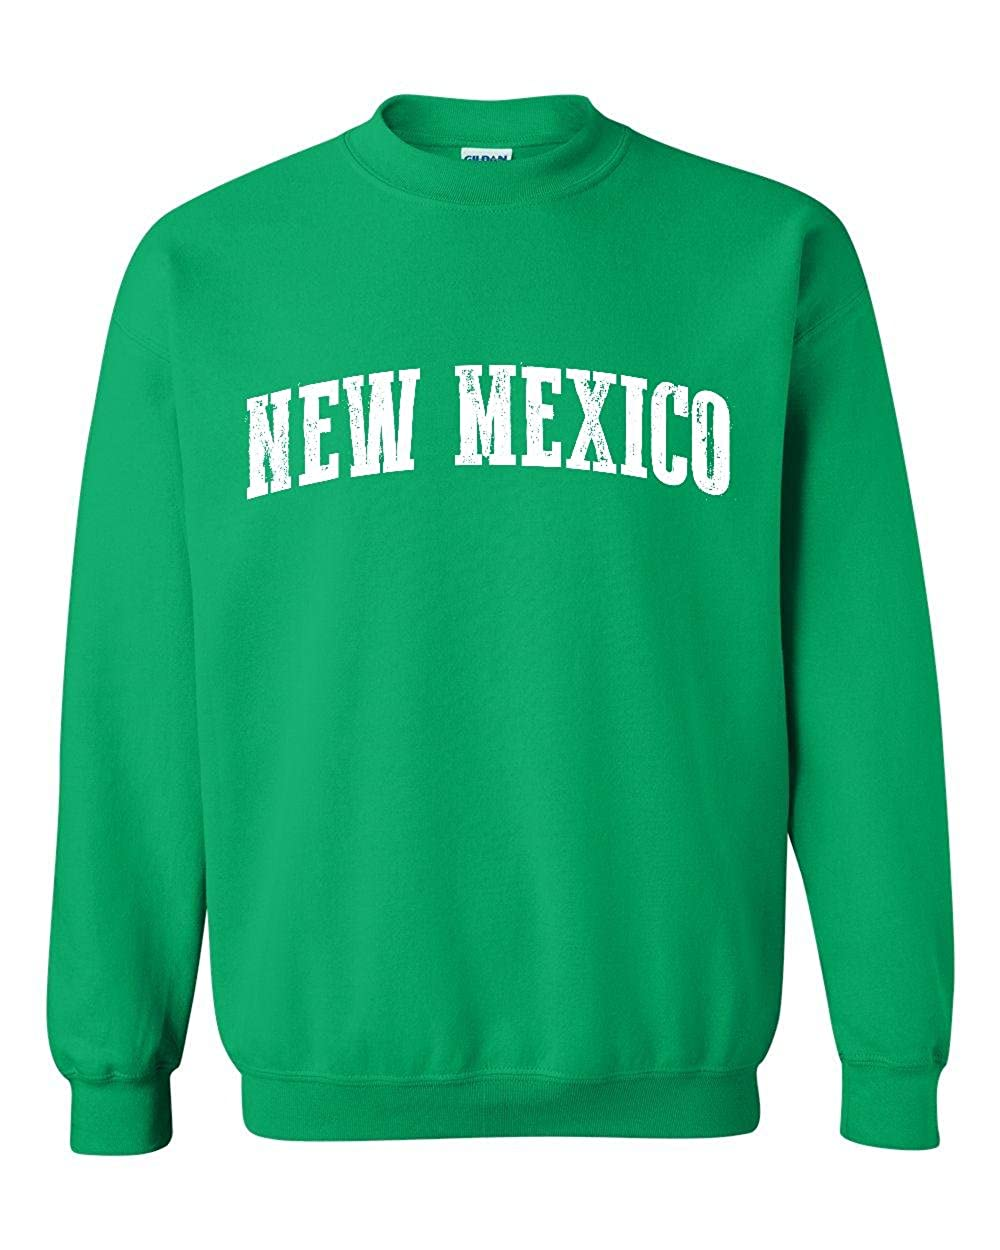 Moms Favorite New Mexico American States New Mexico Unisex Crewneck Sweater